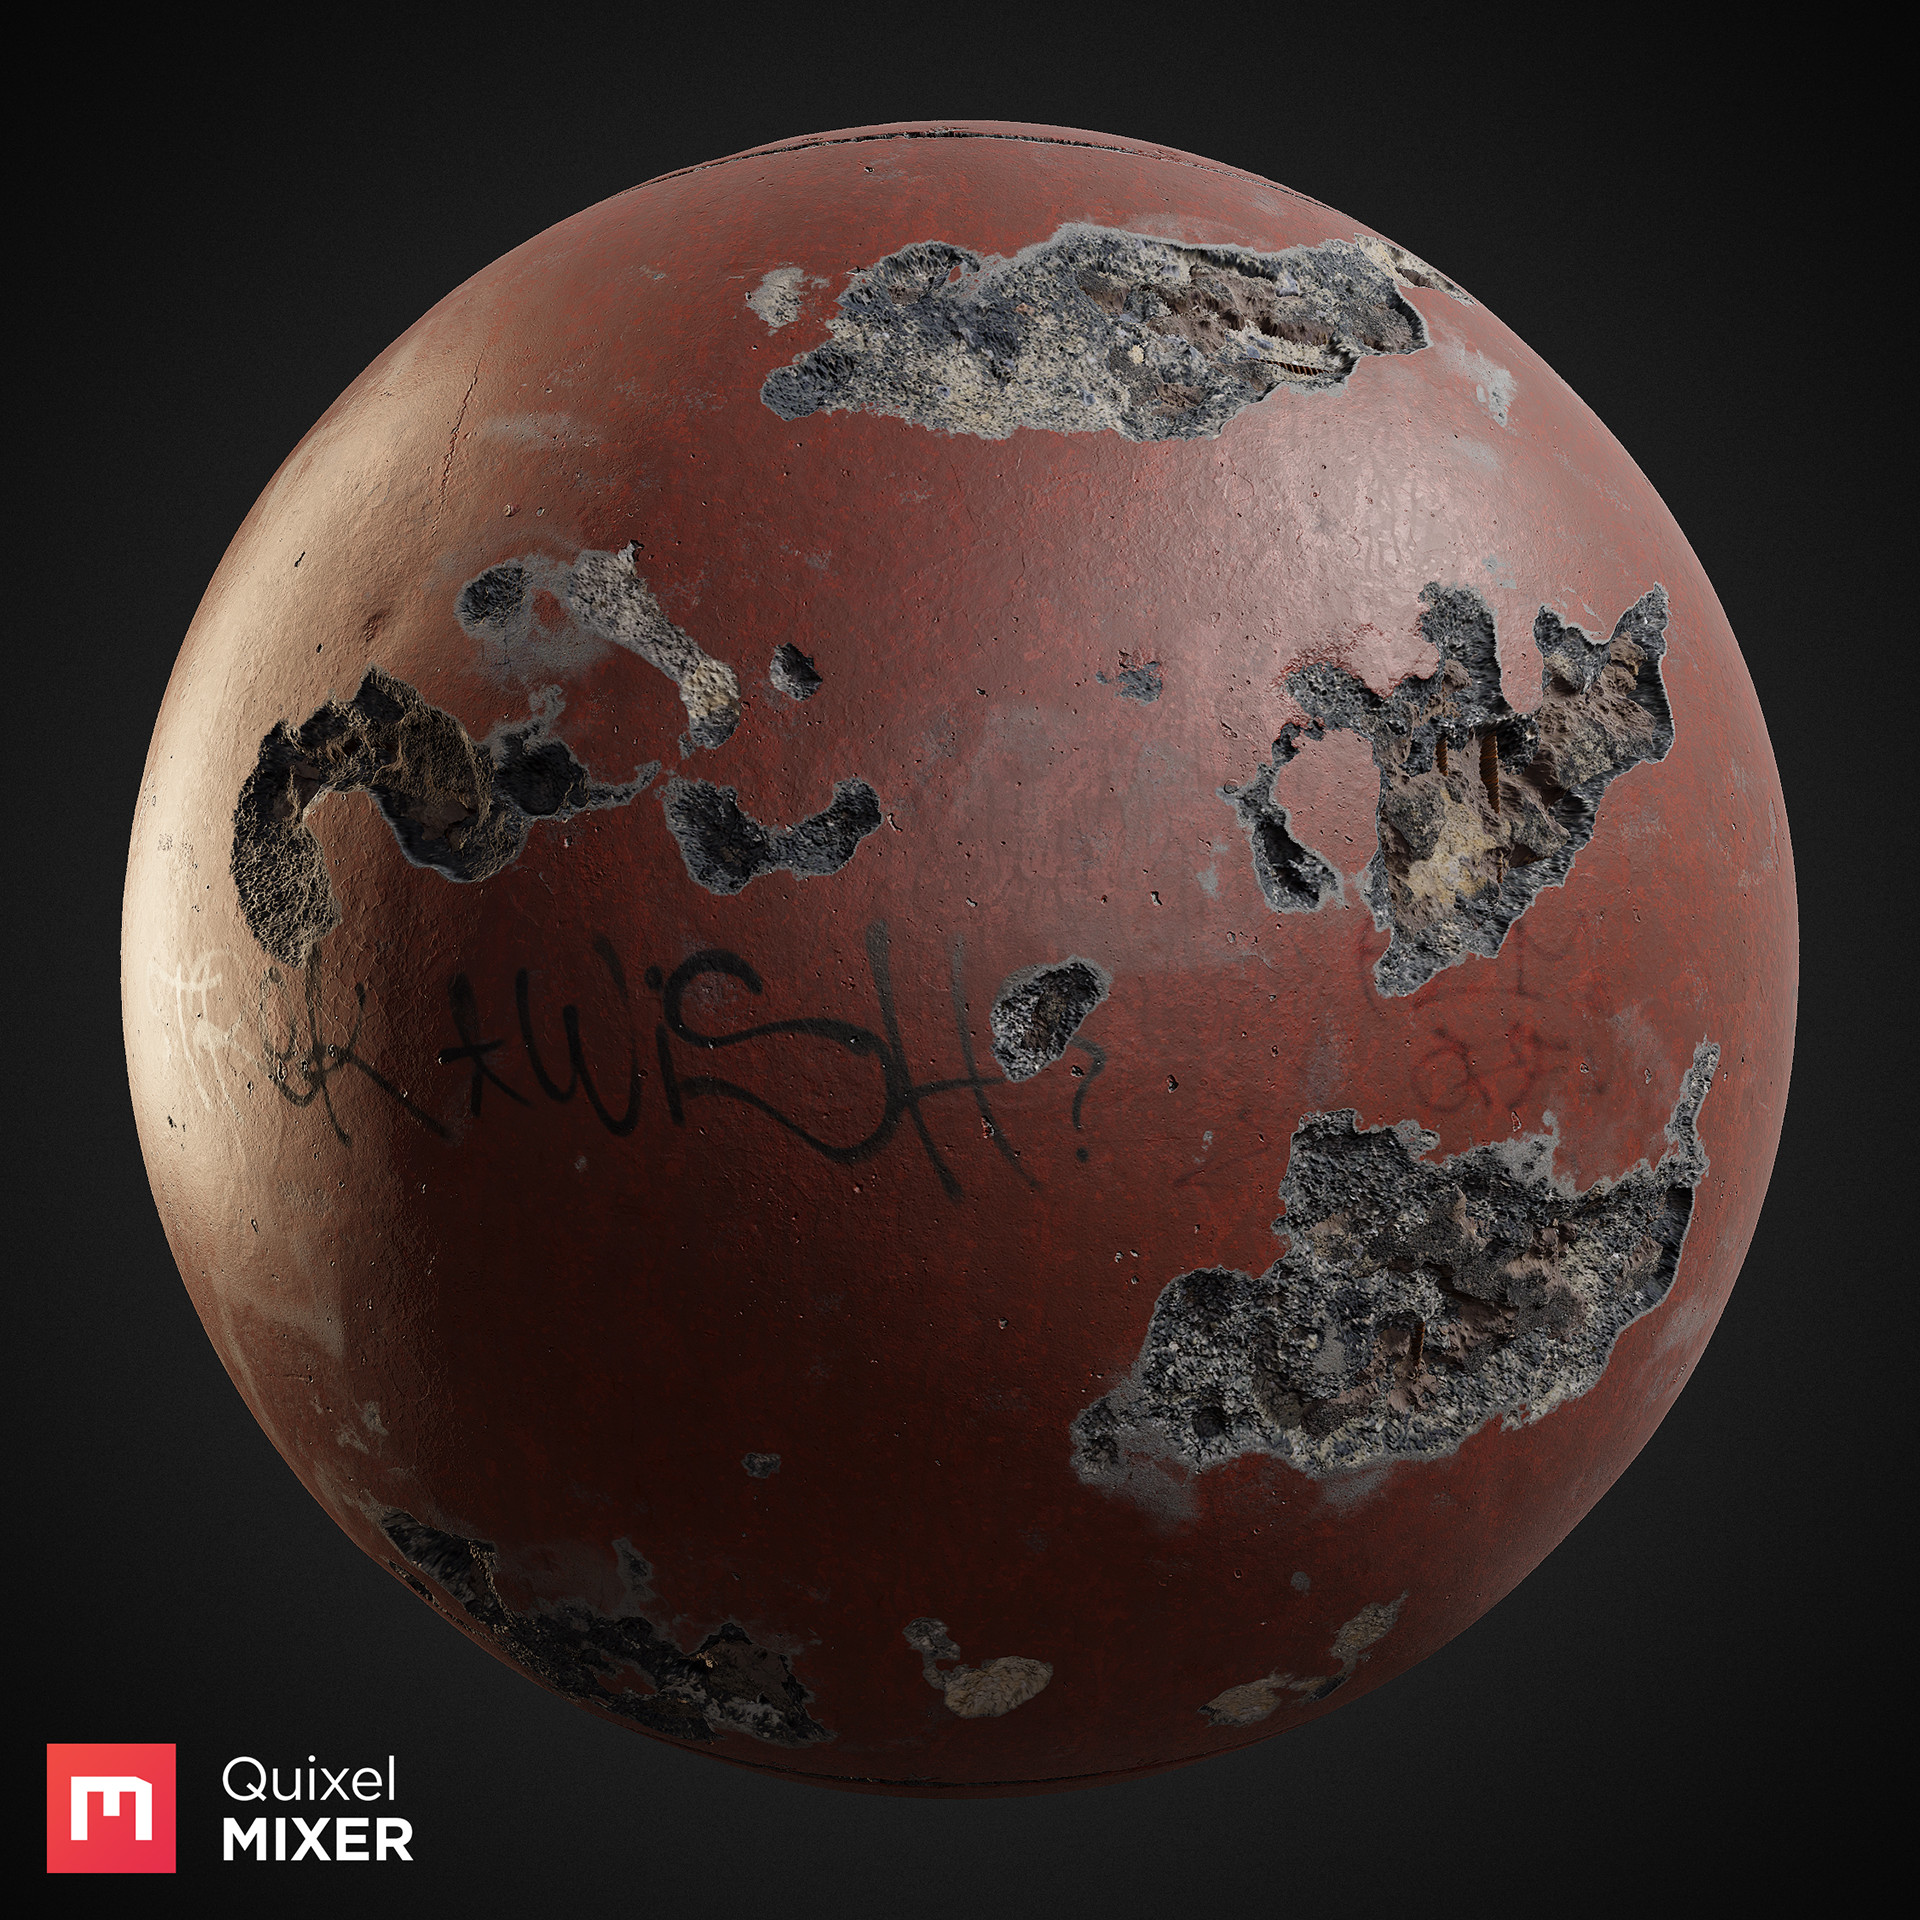 teddy-bergsman-lind-01-concrete-sphere-preview